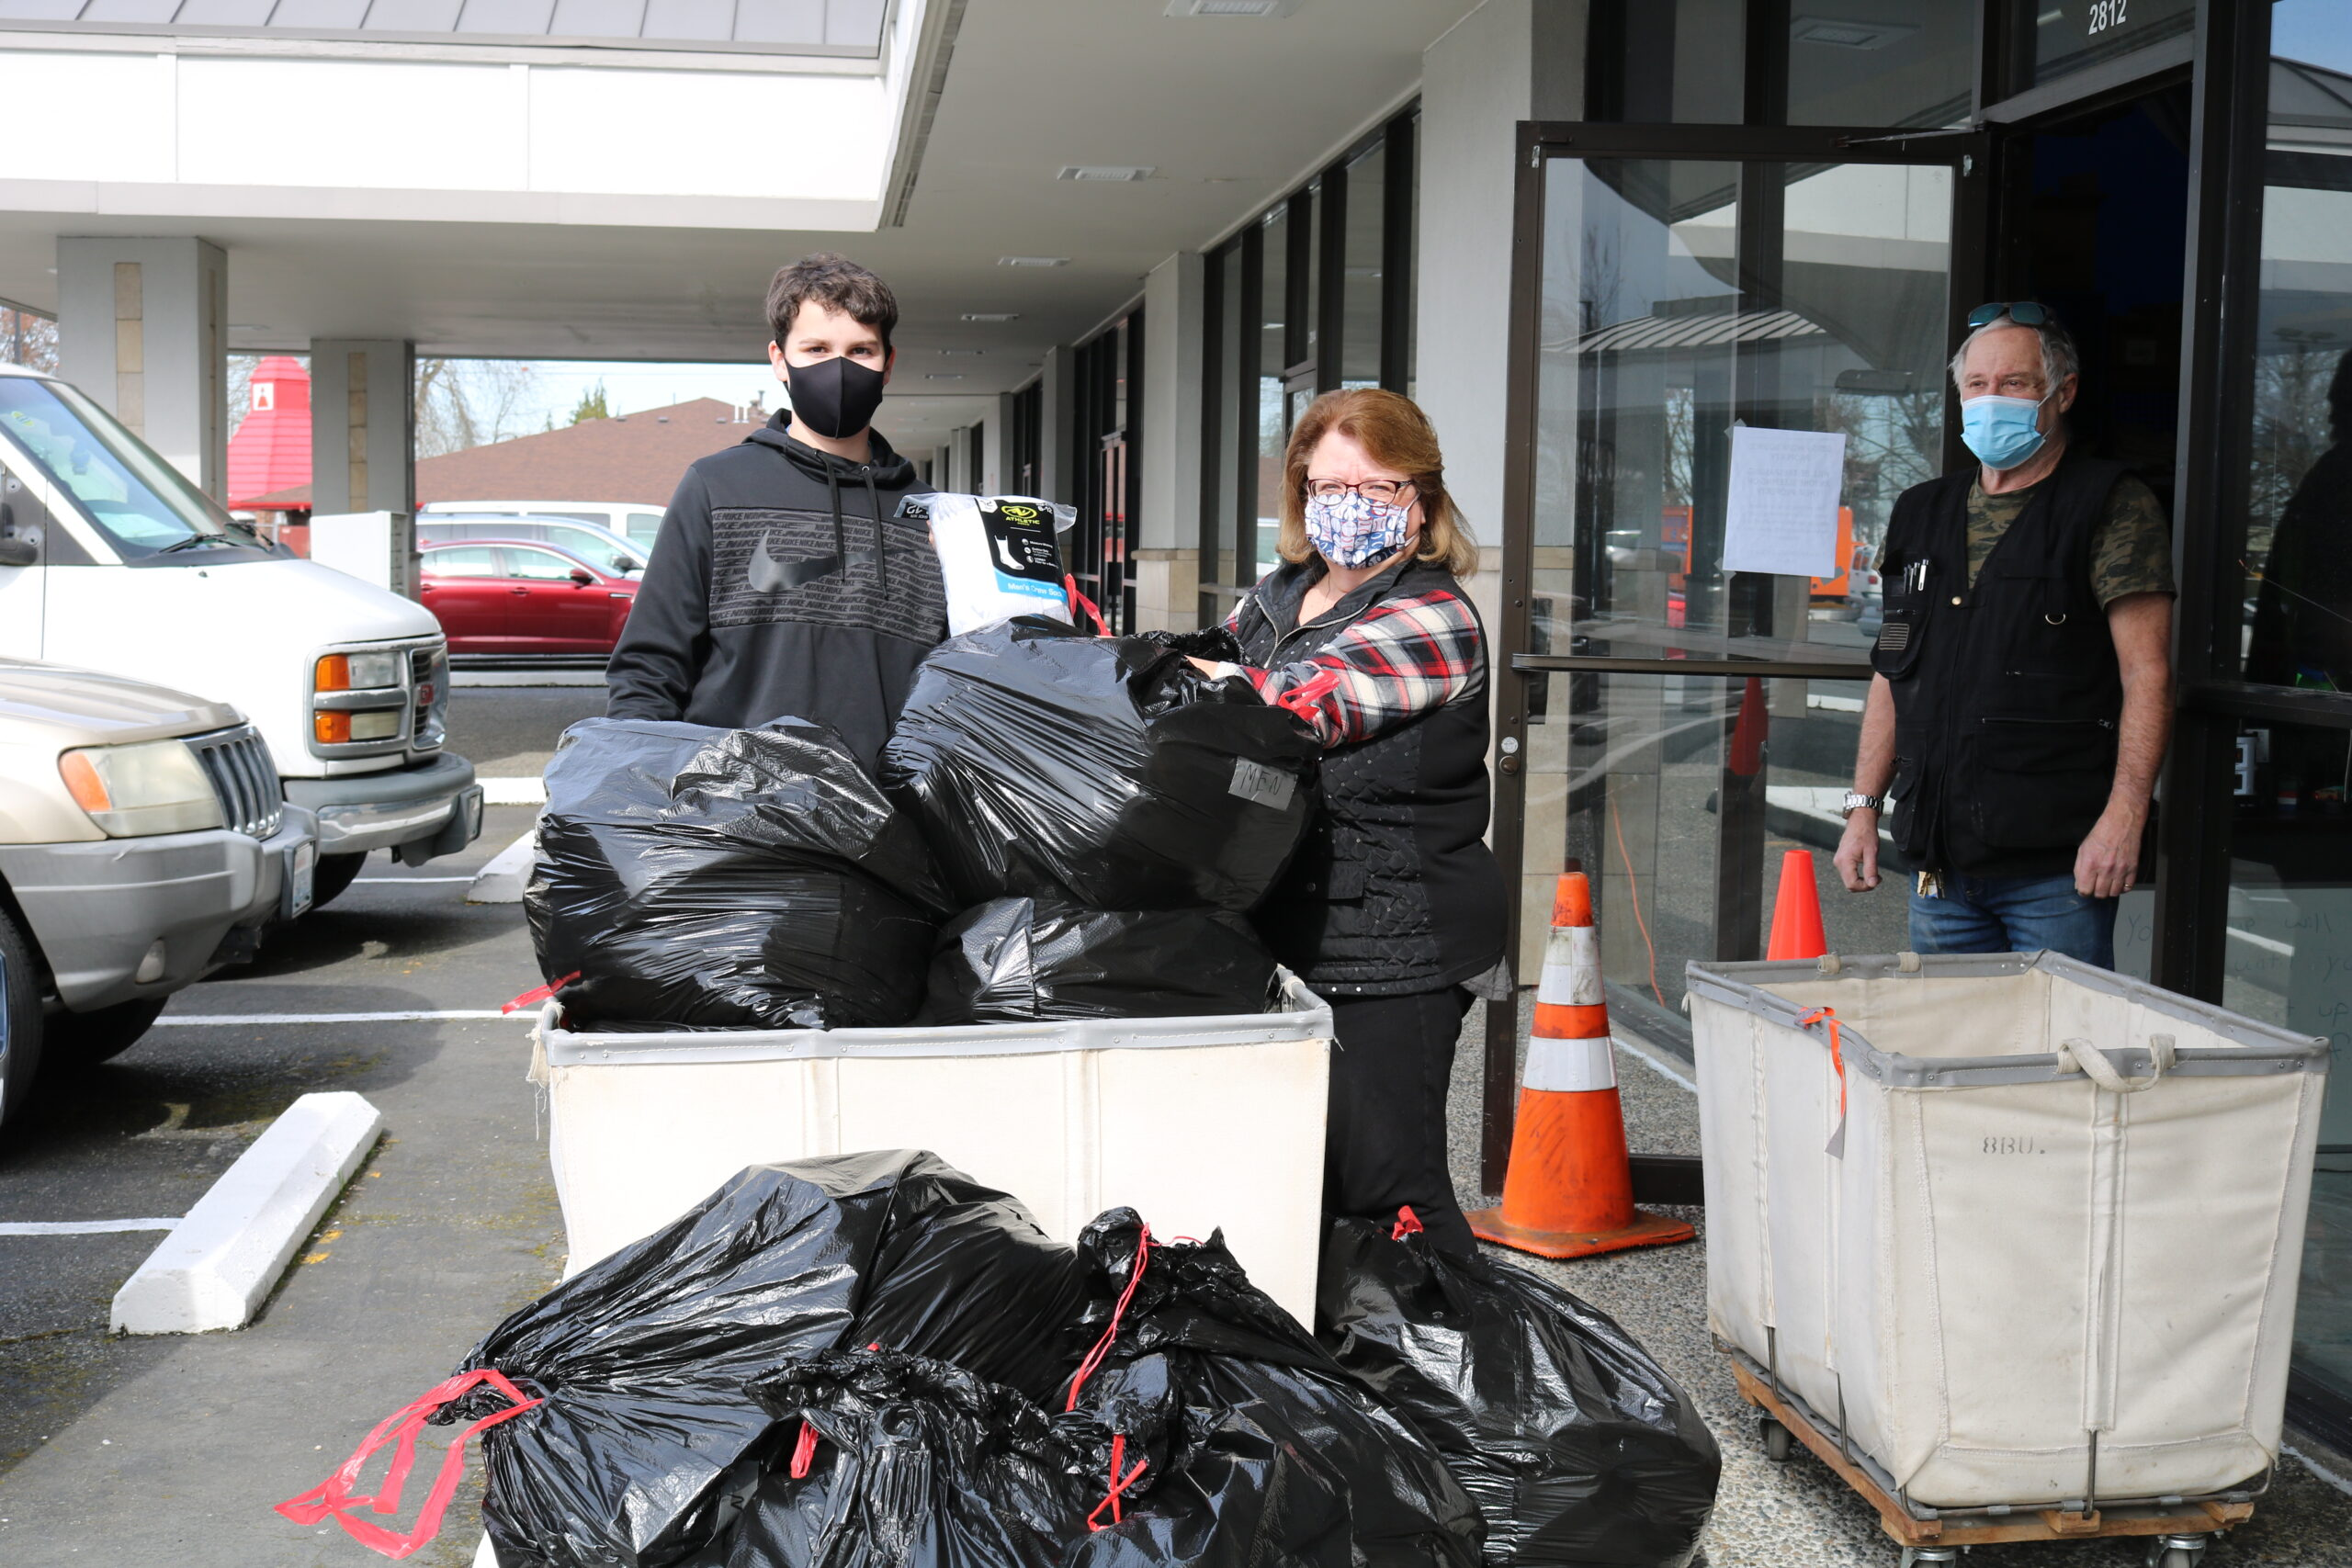 Boy Scout Alec Mayer stands next to Auburn Food Bank director Debbie Christian, before them a wheeled laundry tote overflowing with black garbage sacks full of socks